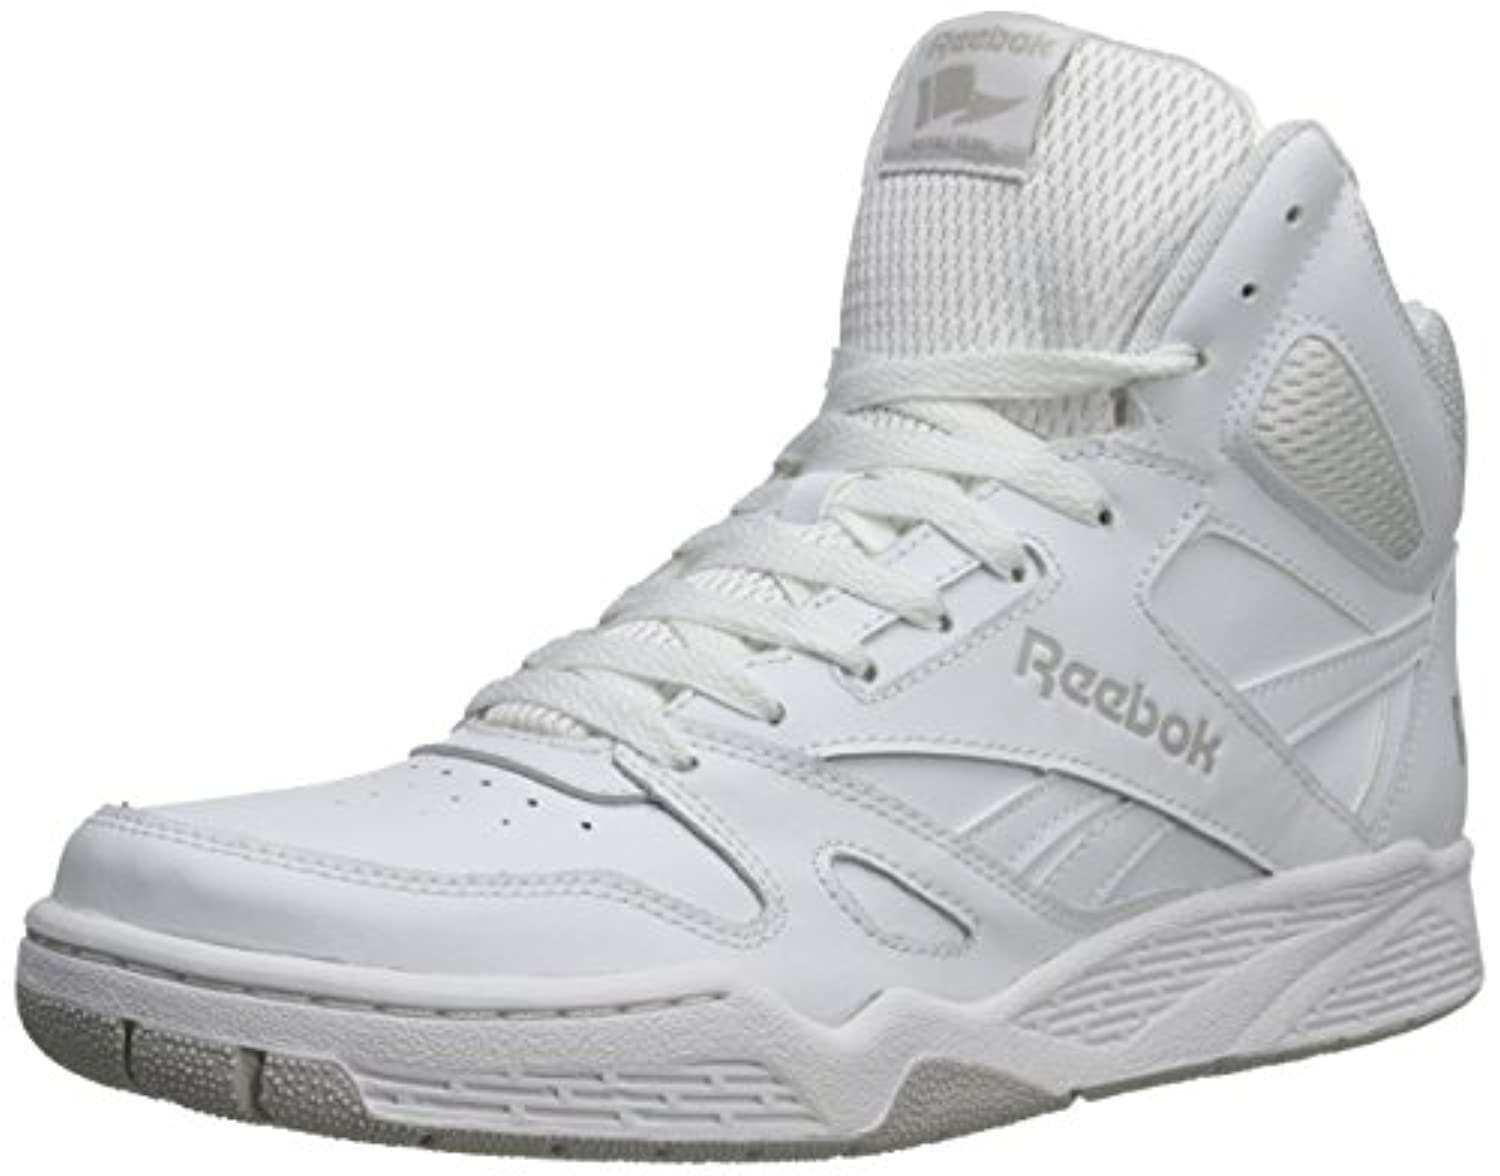 b905c6a40cd15 ... Reebok Men s Royal BB4500 Hi Basketball Shoe